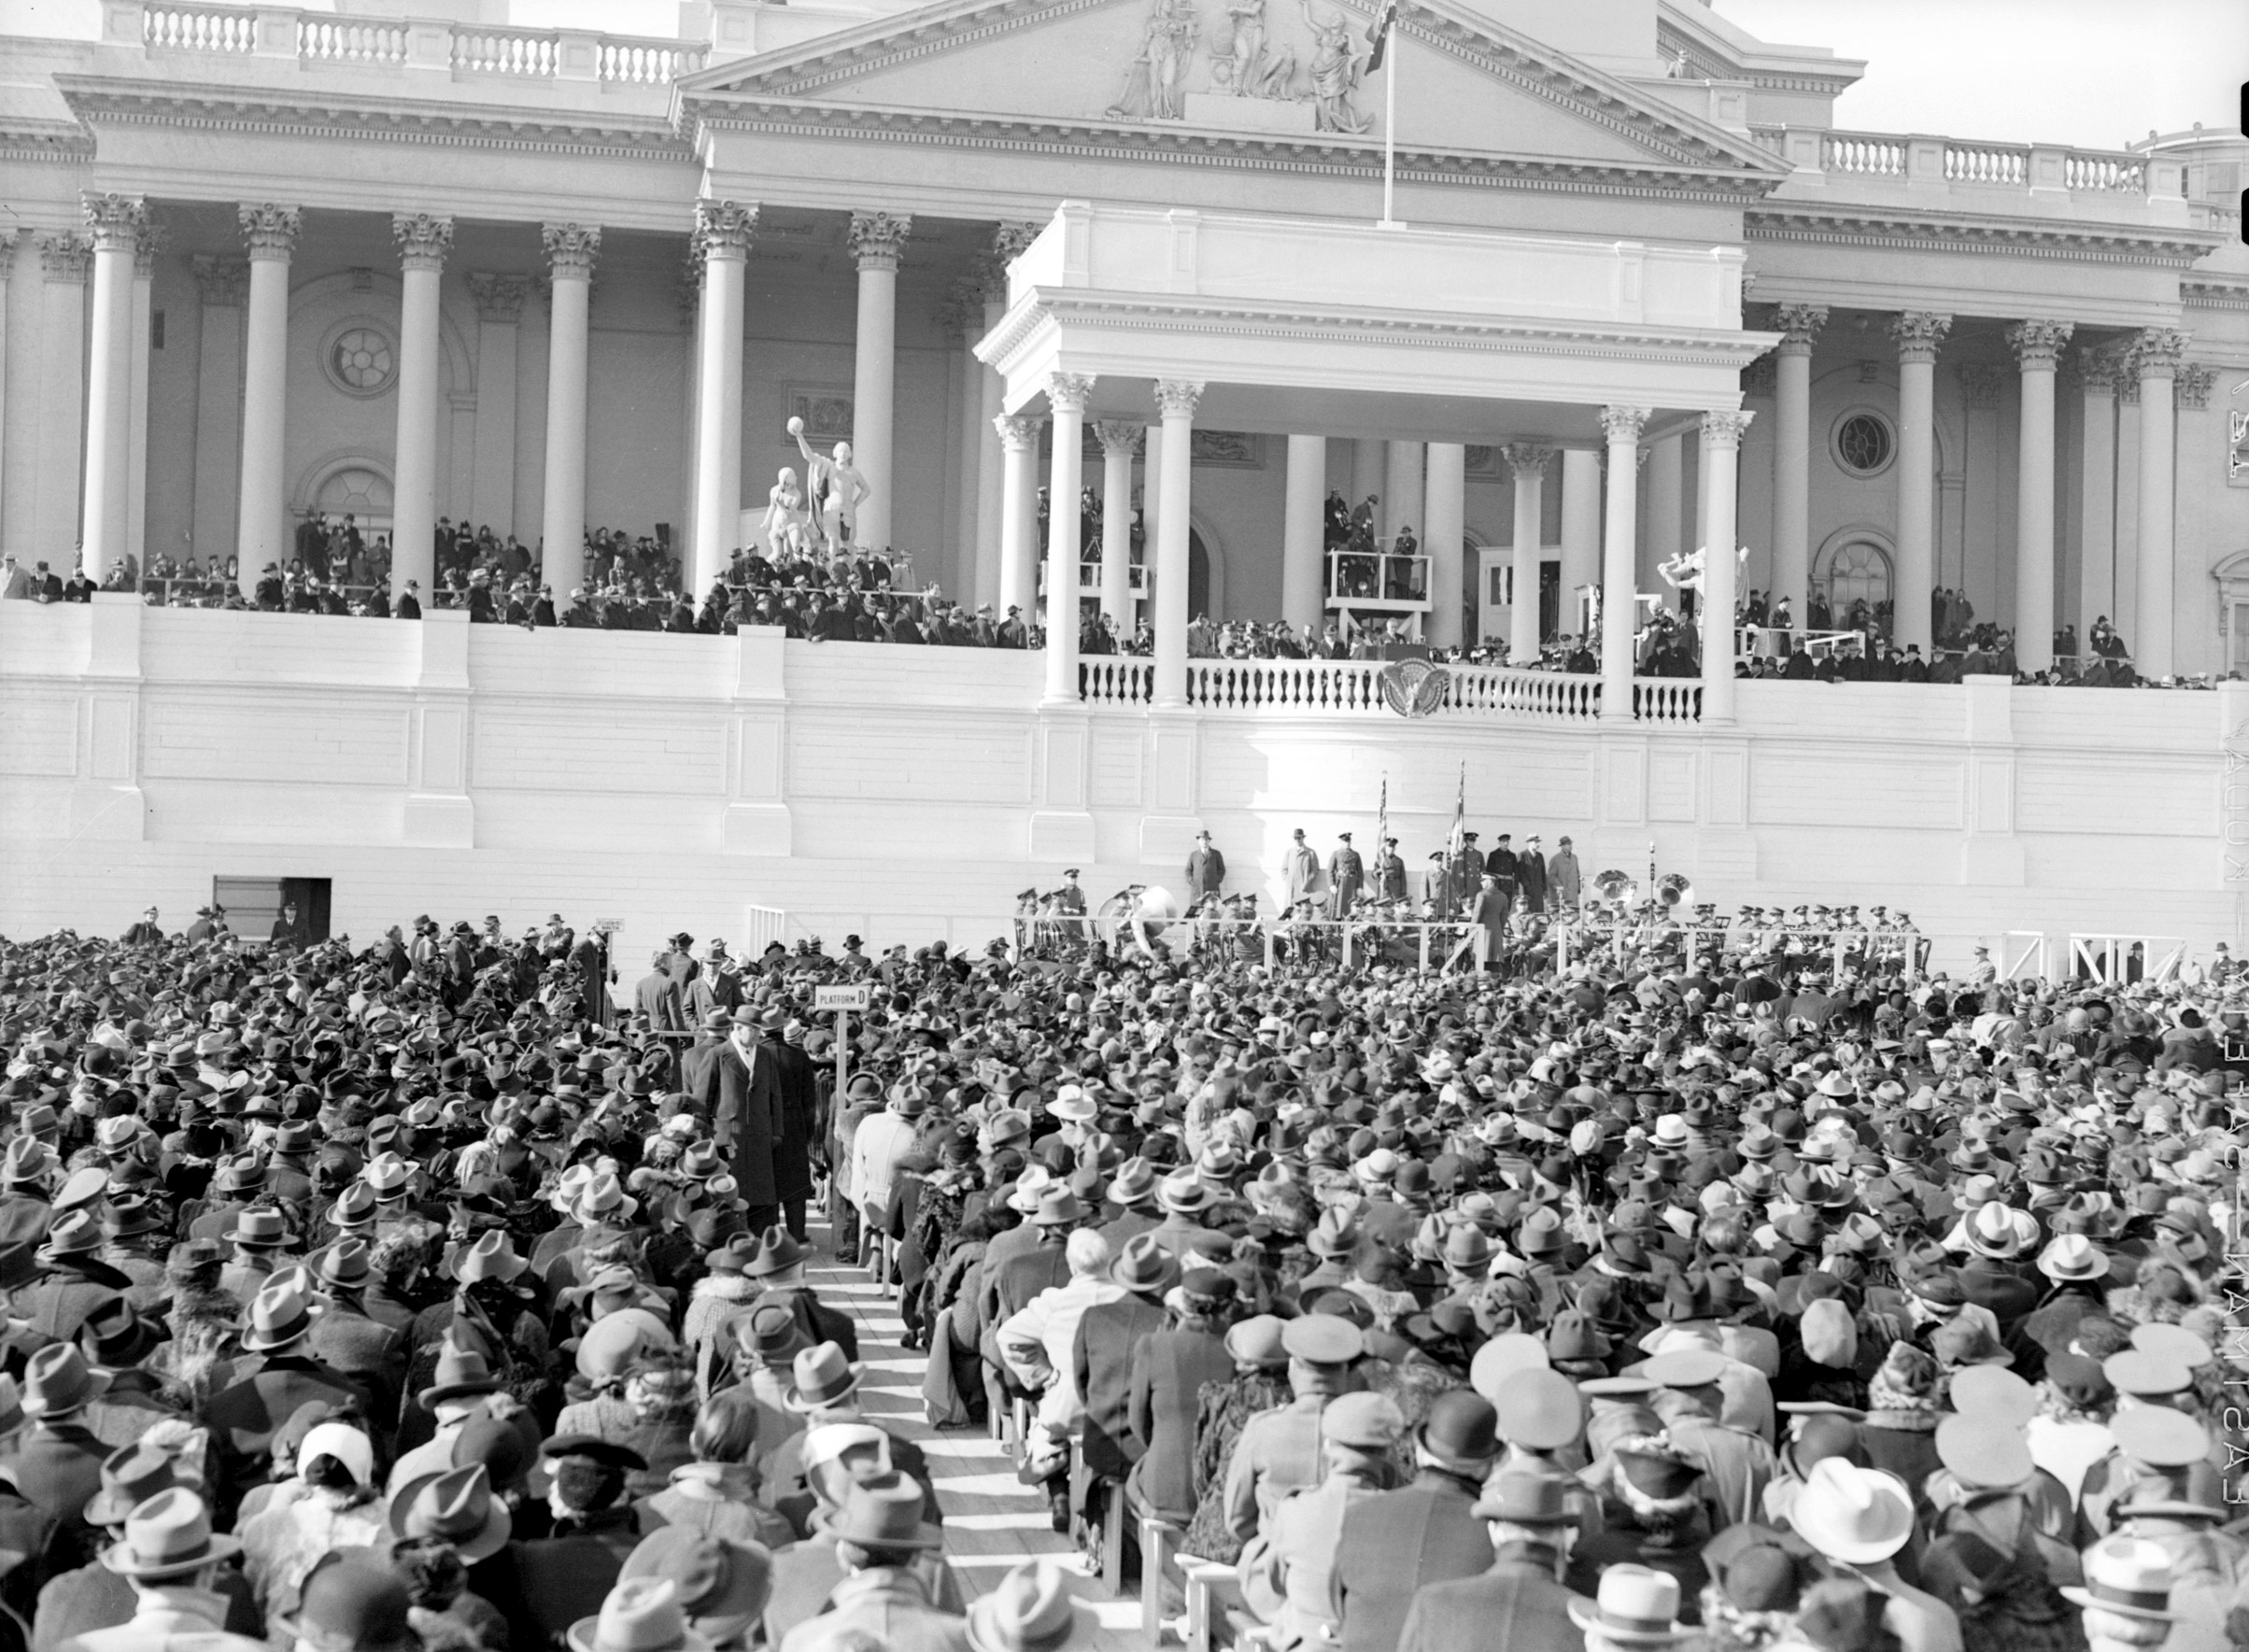 Franklin D. Roosevelt's third inauguration, 1941.